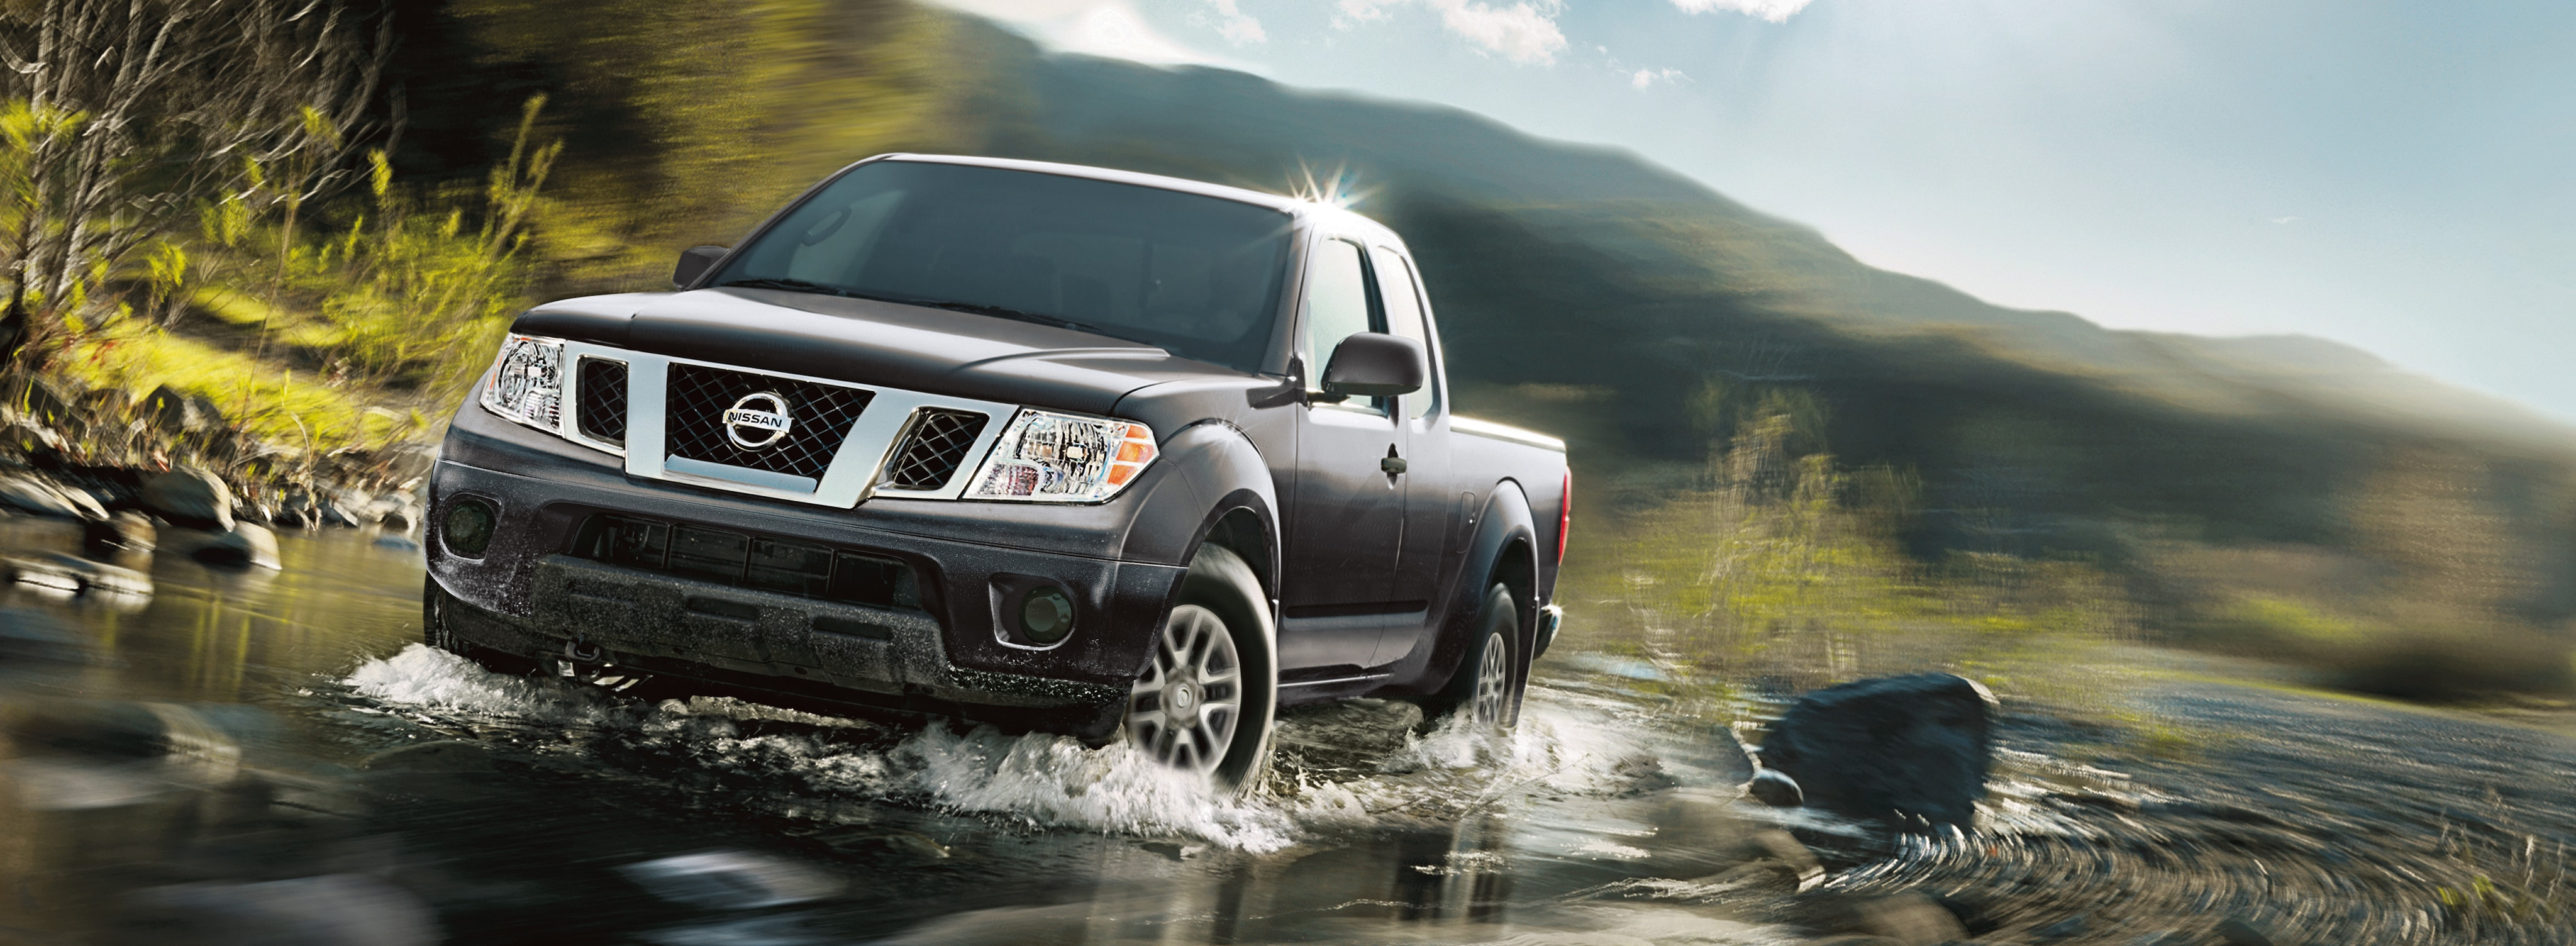 Honolulu's New City Nissan | New and Used Nissan Cars